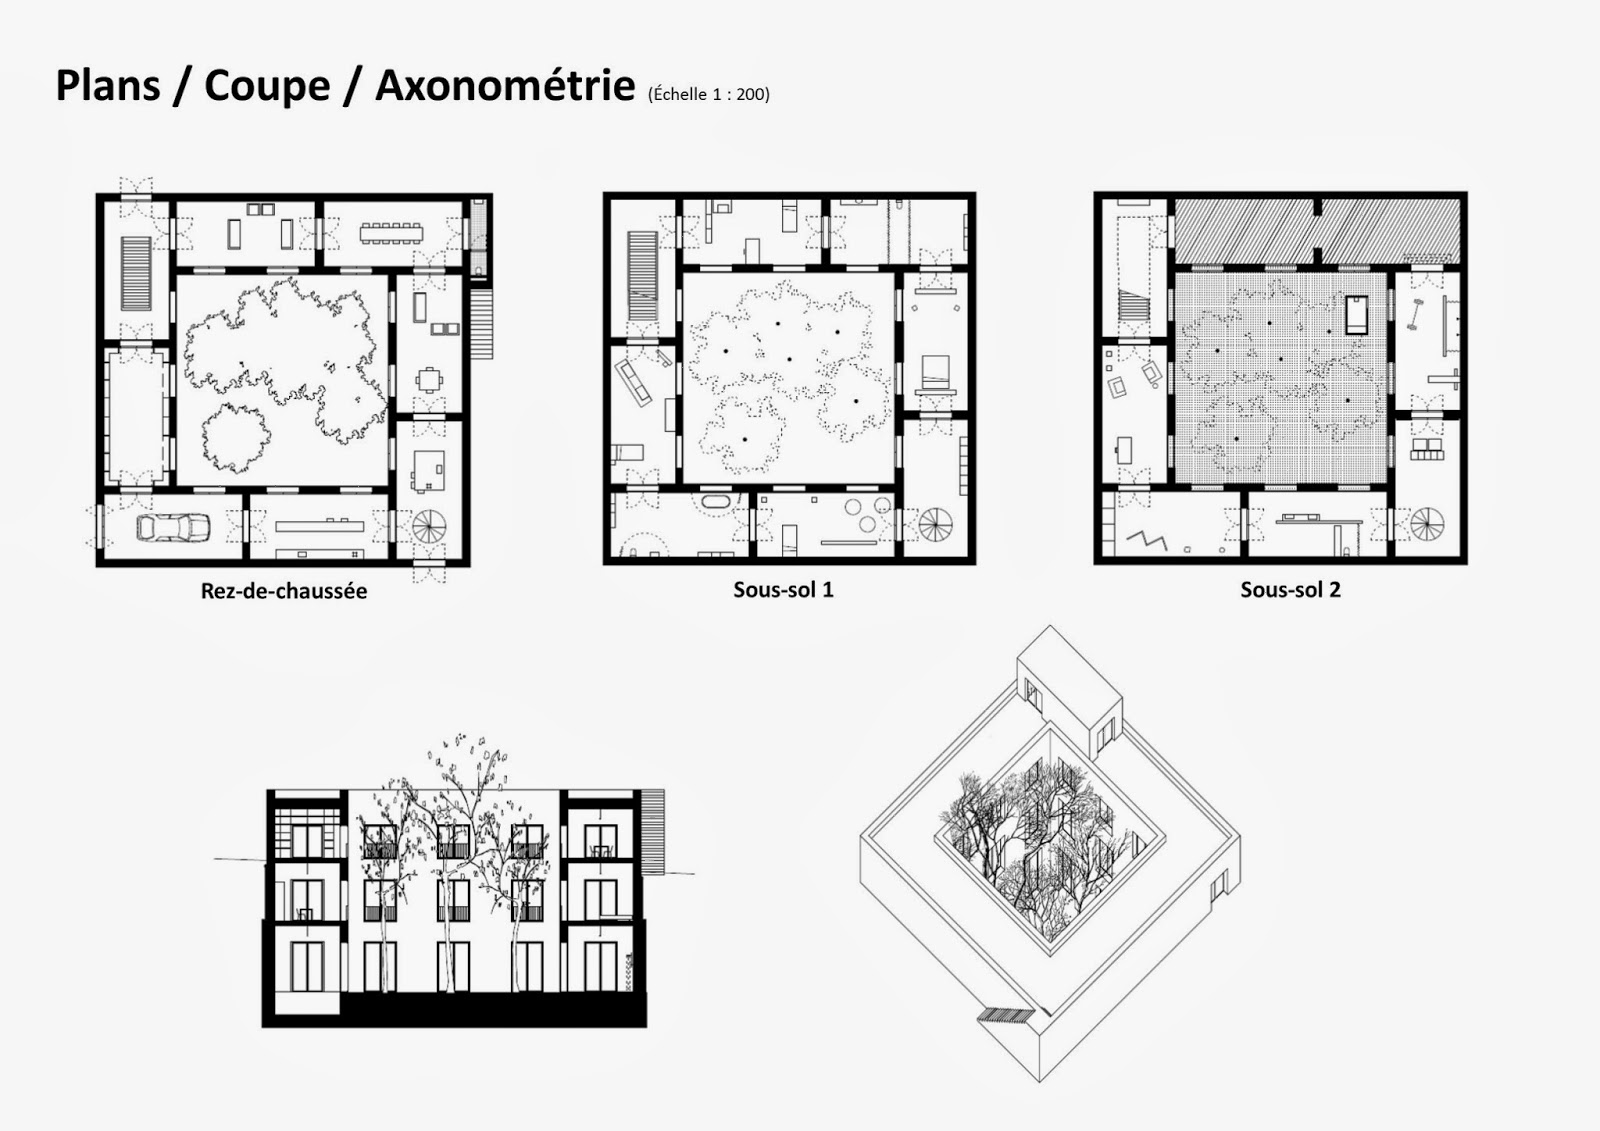 plan maison patio amazing incroyable plan de maison avec patio maison bois de plain pied avec. Black Bedroom Furniture Sets. Home Design Ideas